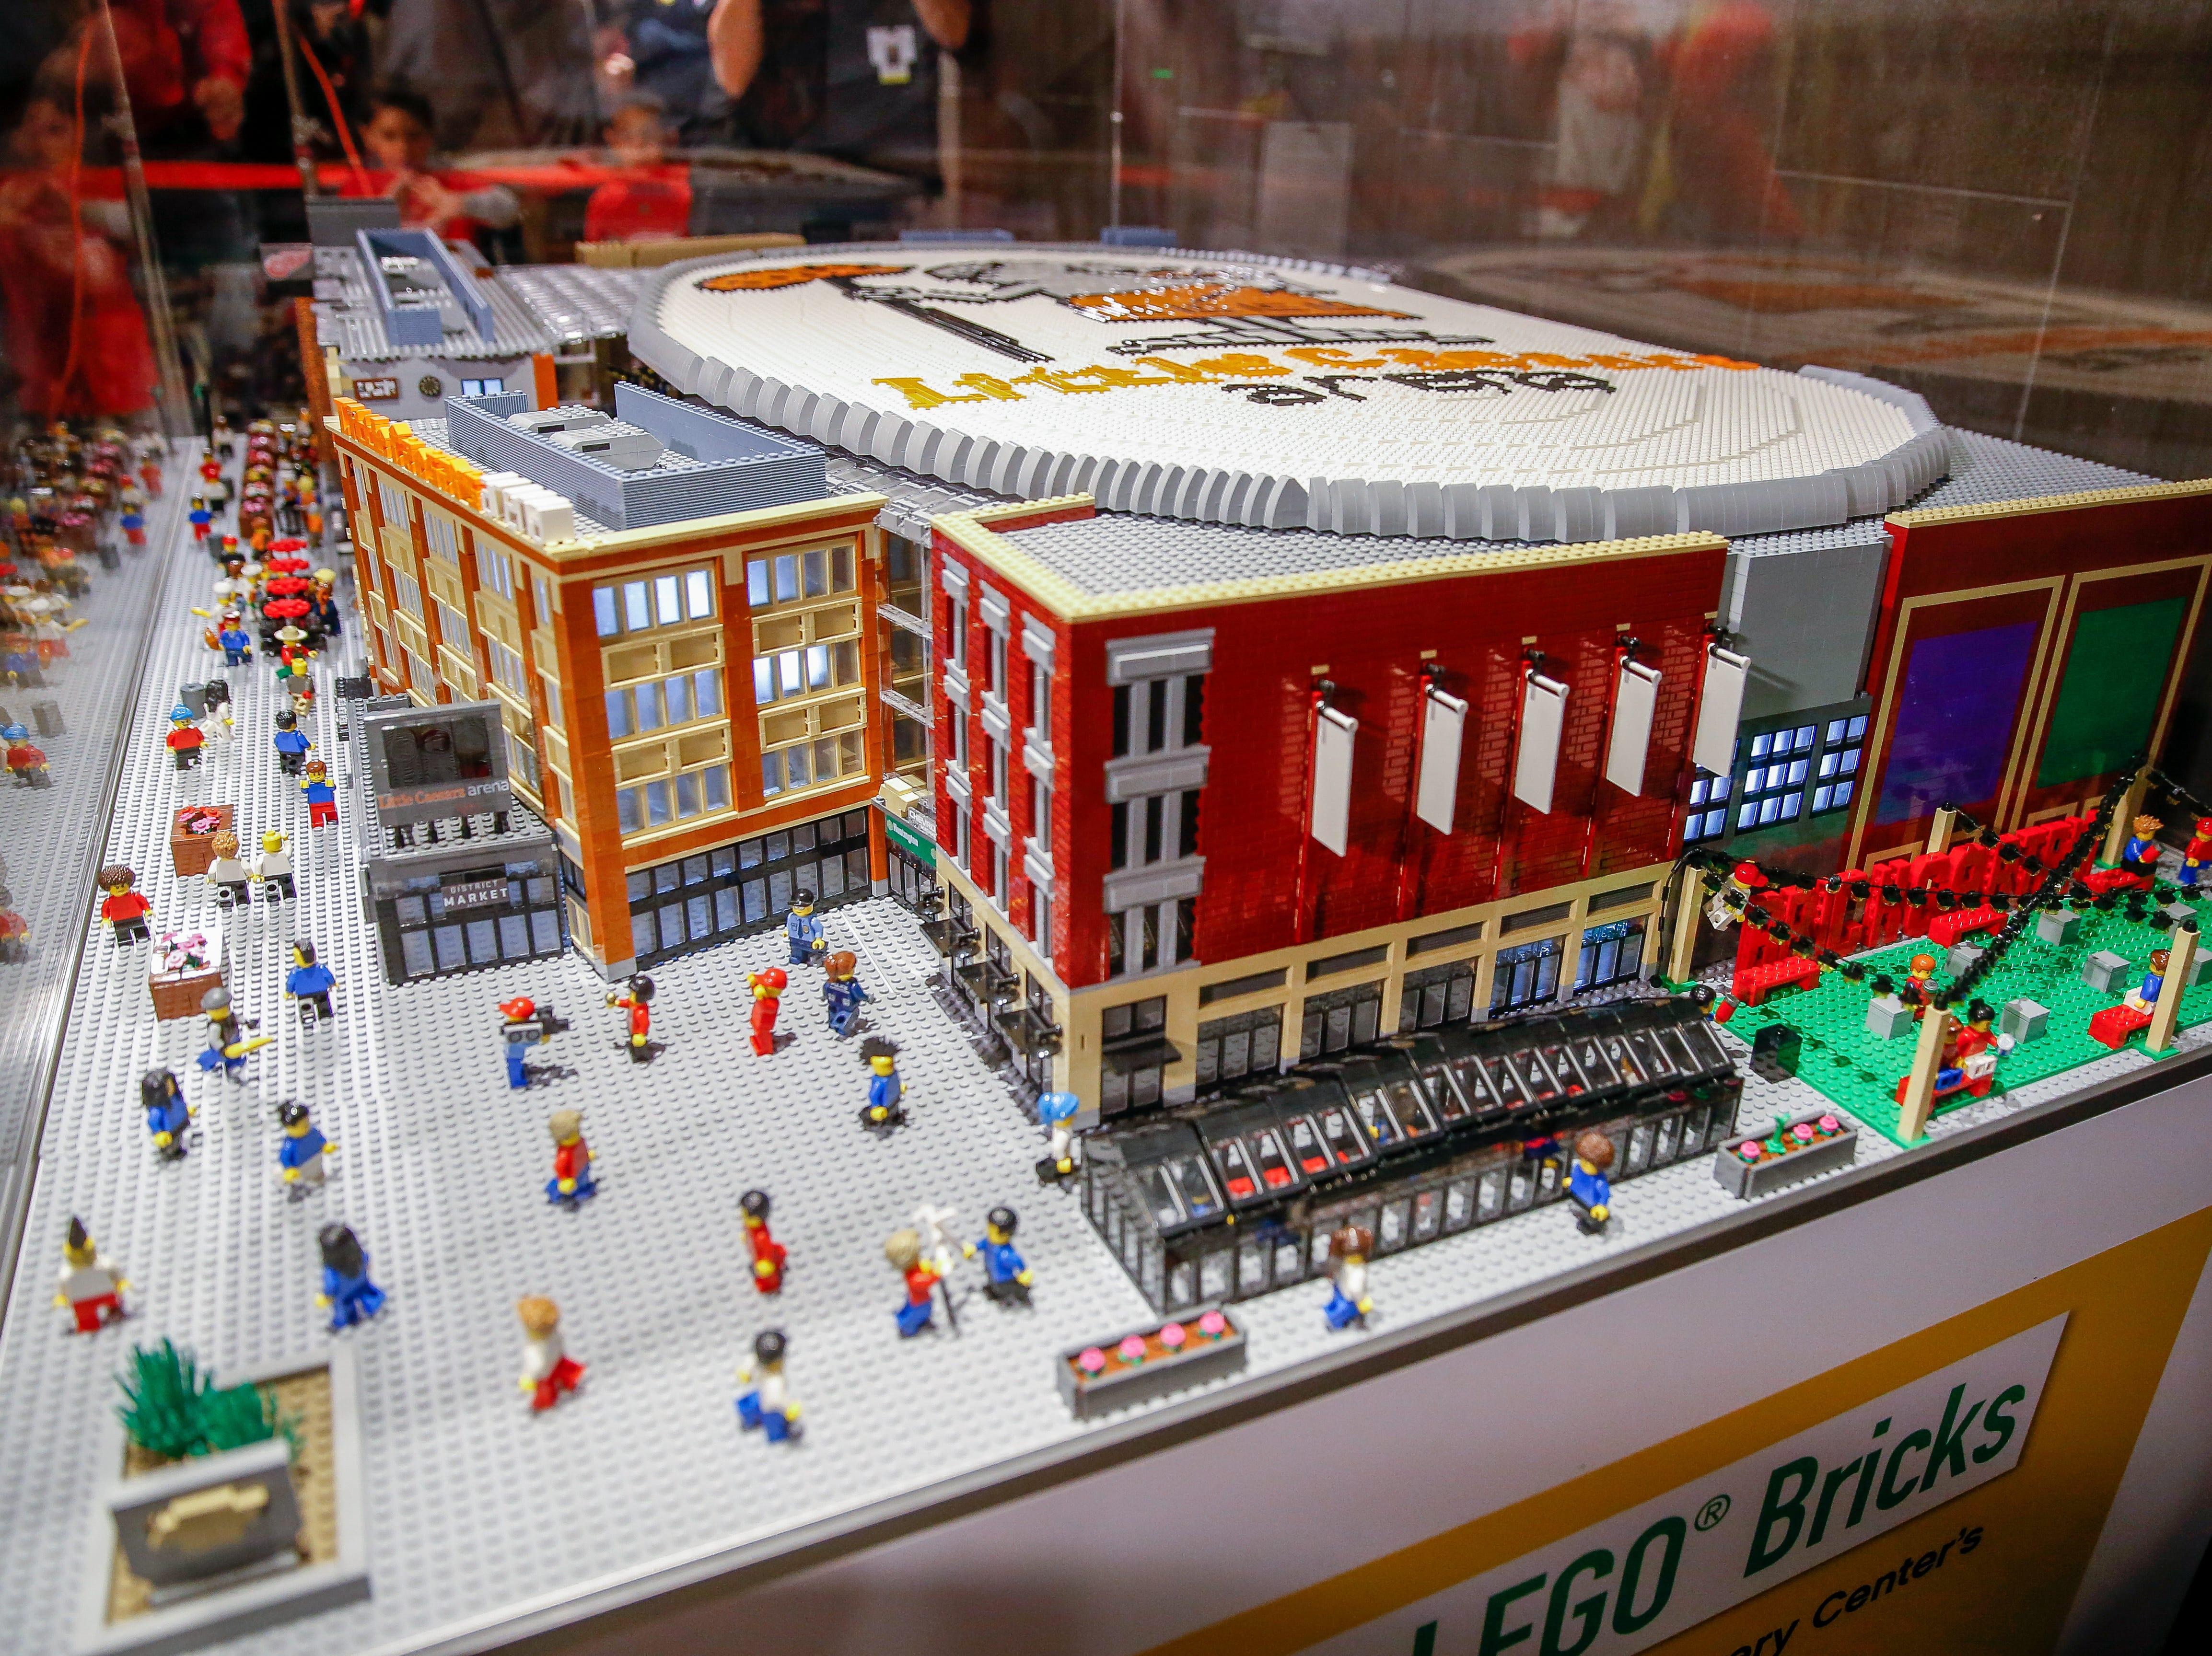 The model is complete with interior and exterior structural detail, more than a thousand windows, amenities and interchangeable floors between the Red Wings and the Pistons.